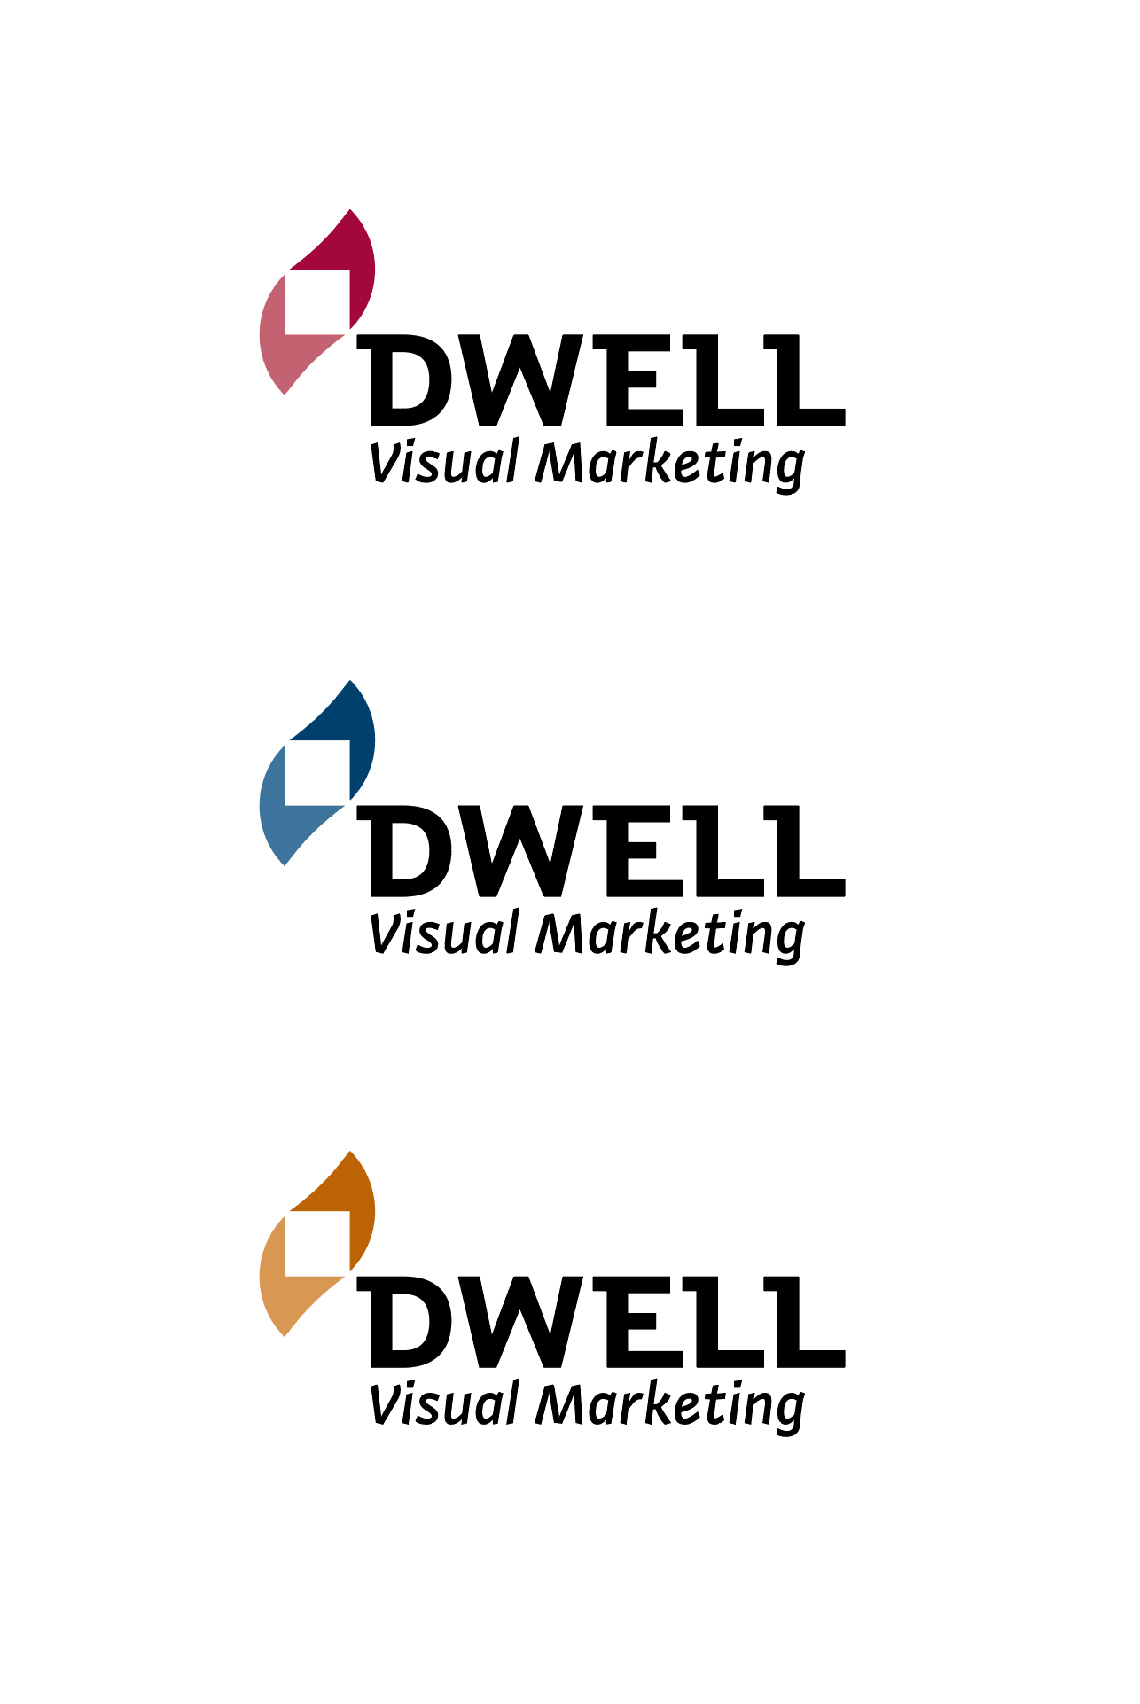 Dwell Logo Design Color Version